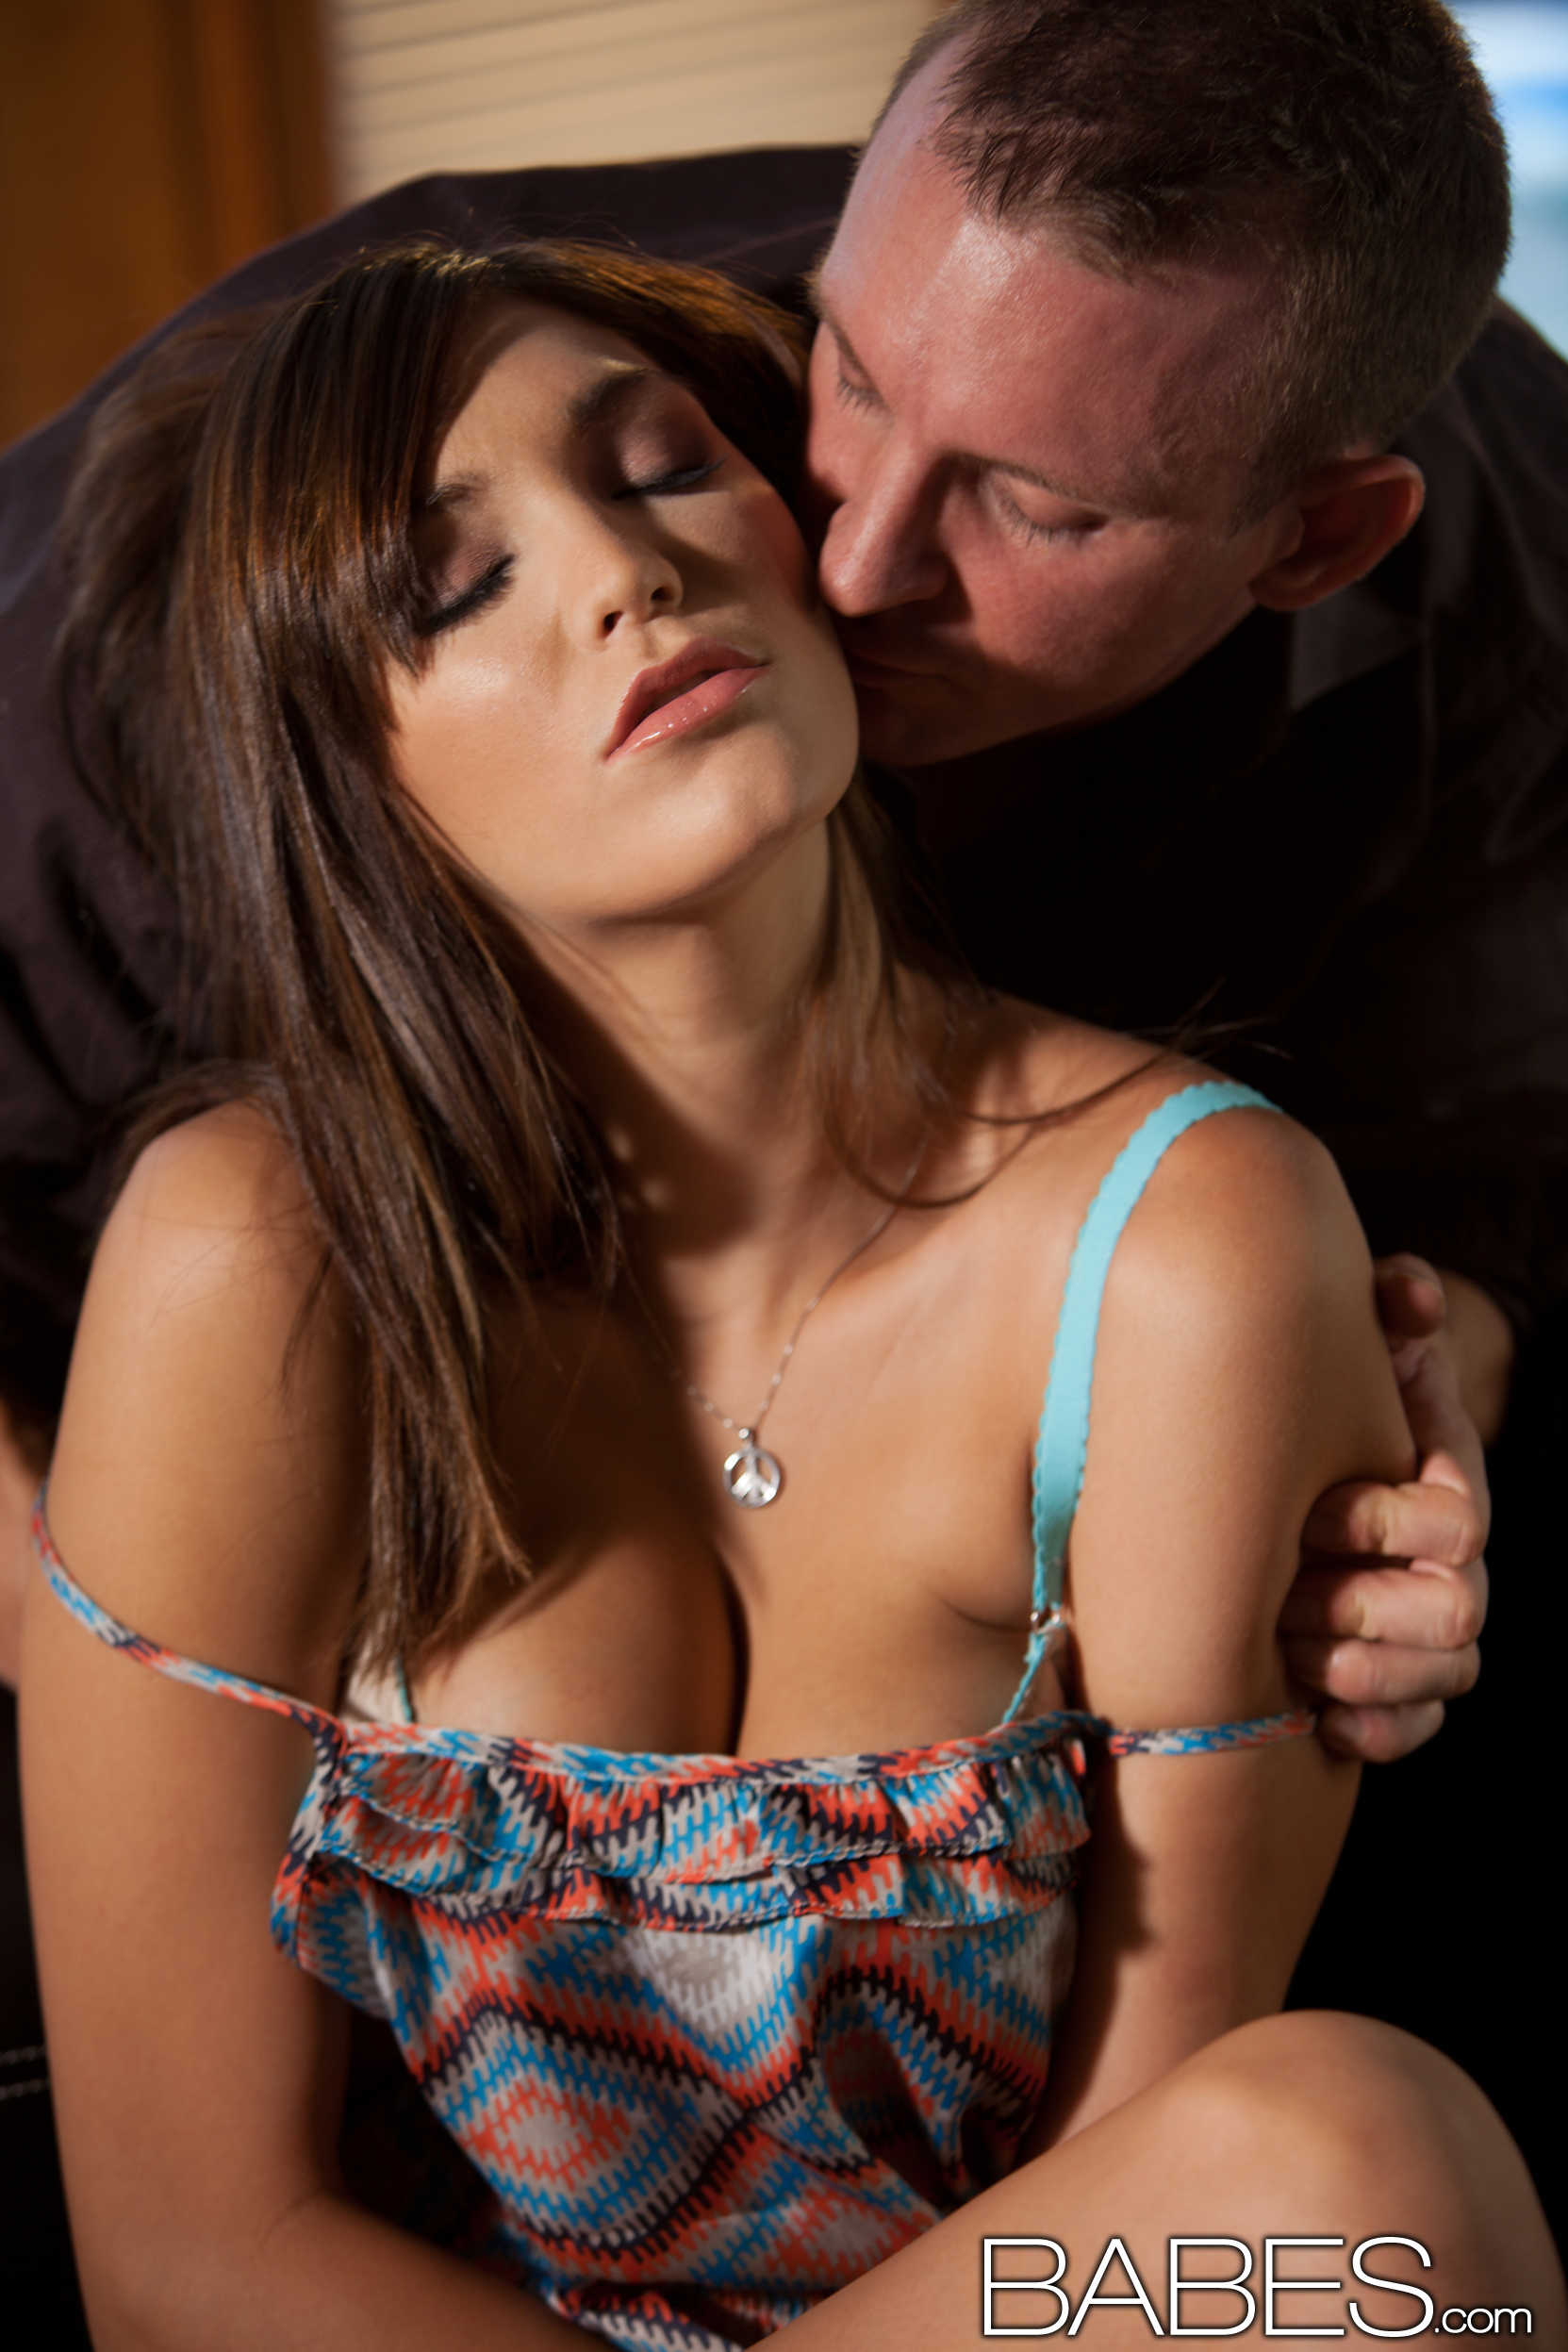 Babes 'Effervescent Touch' starring Holly Michaels (Photo 12)